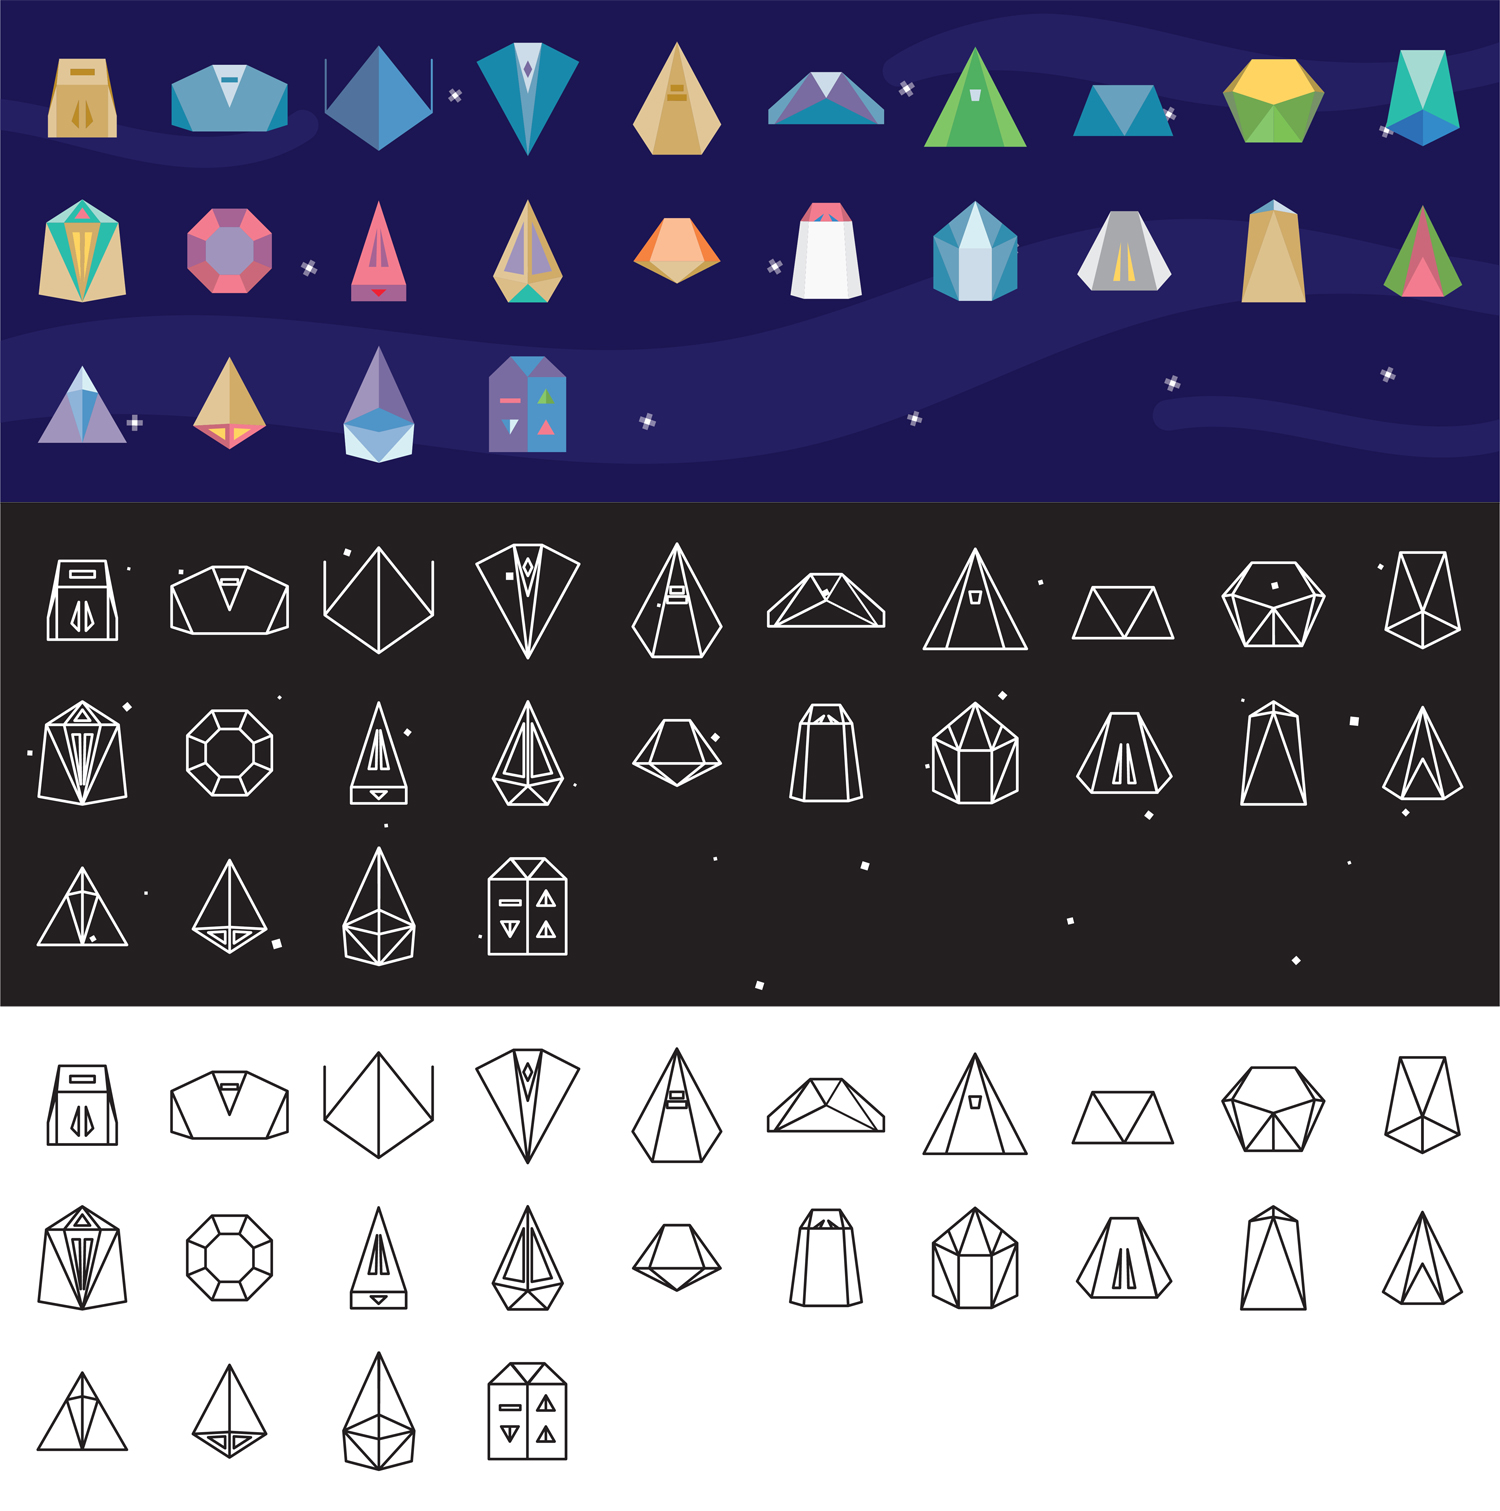 Elite Ships Icon Set - A icon set of the ships from Elite. These are based on the ship data cards that came with the 'ArcElite' version of the game, released in 1991.